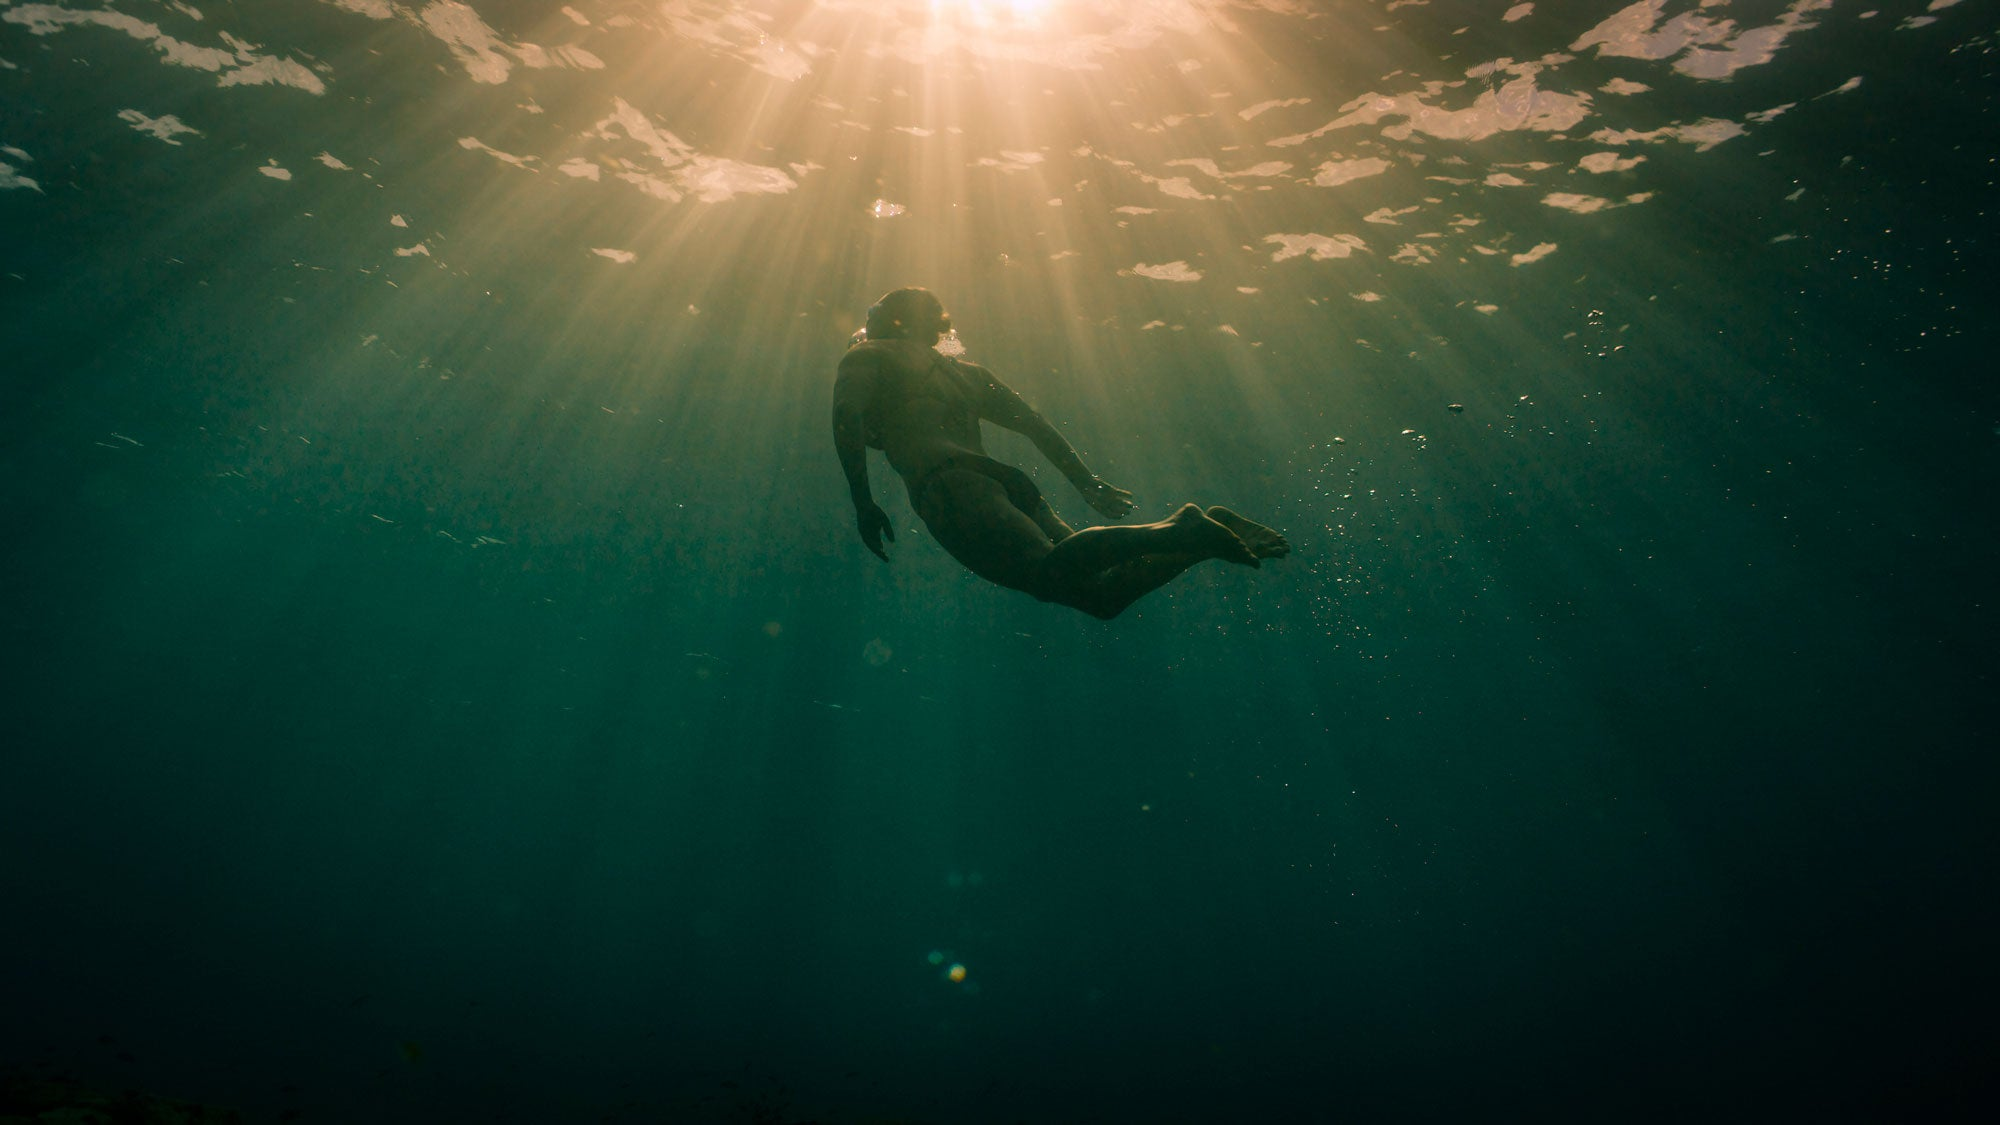 Beth French captured swimming underwater during her oceans 7 challenge